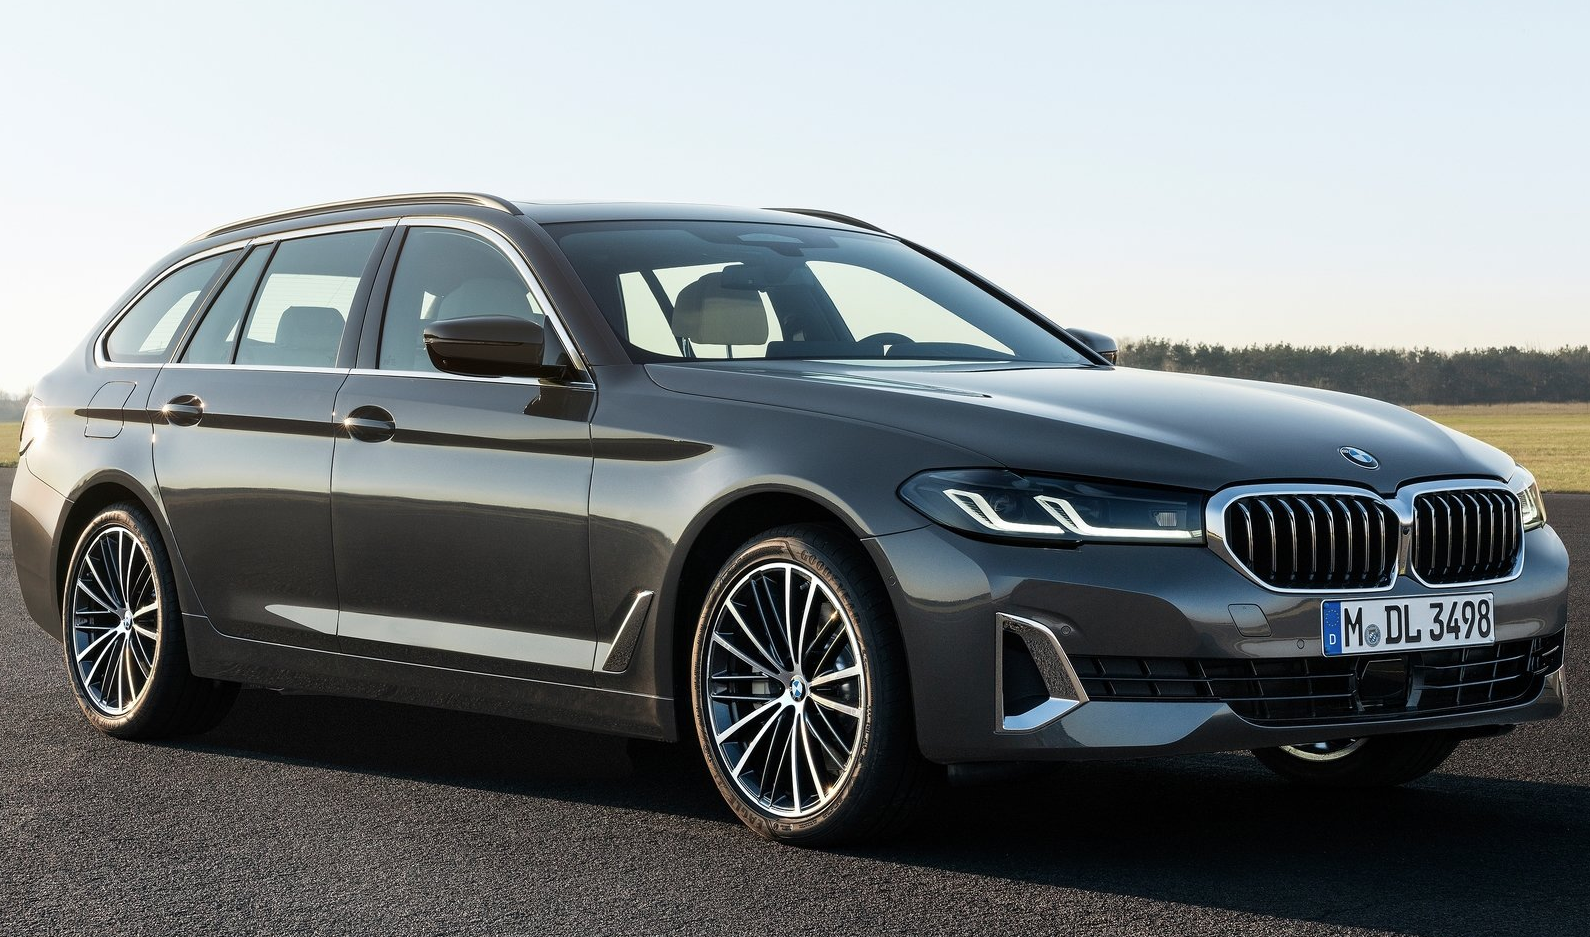 Bmw 5 Series Touring 2021 In 2020 Bmw 5 Series Bmw New Bmw 5 Series